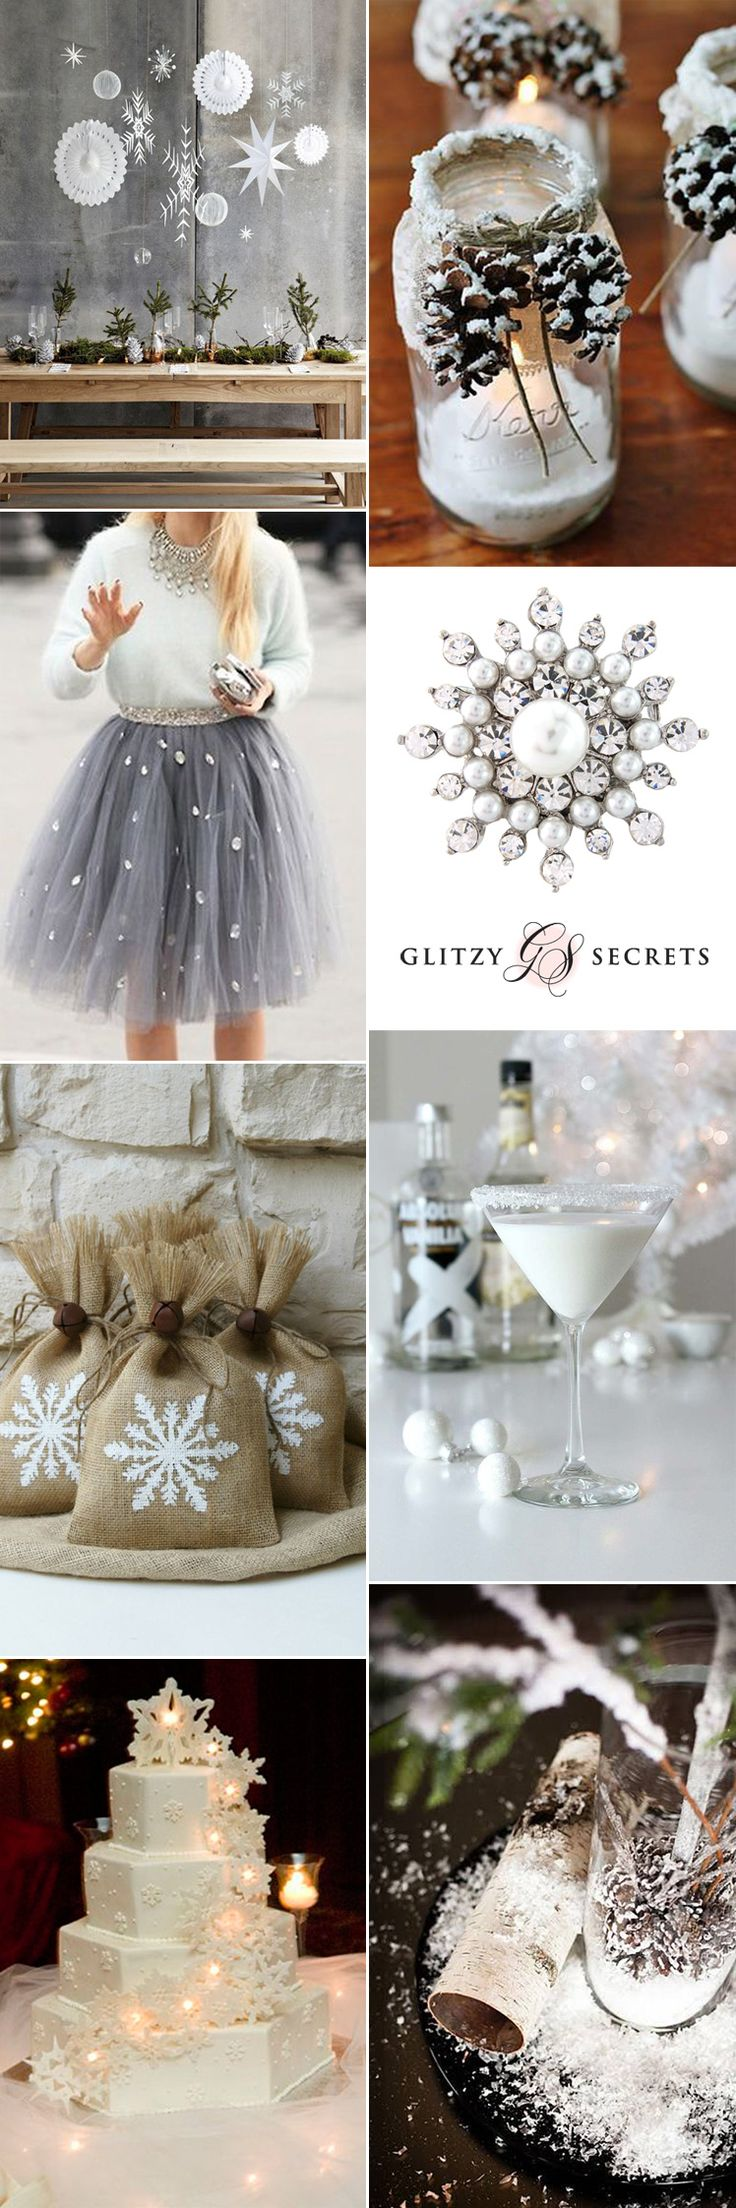 Well I don't know about you but I'm certainly dreaming of a white Christmas.There is something so fabulous about snow, so it's really no surprise that snowy wedding themes are always popular in winter, so here is a flurry of ideas for a magical snowflake wedding theme